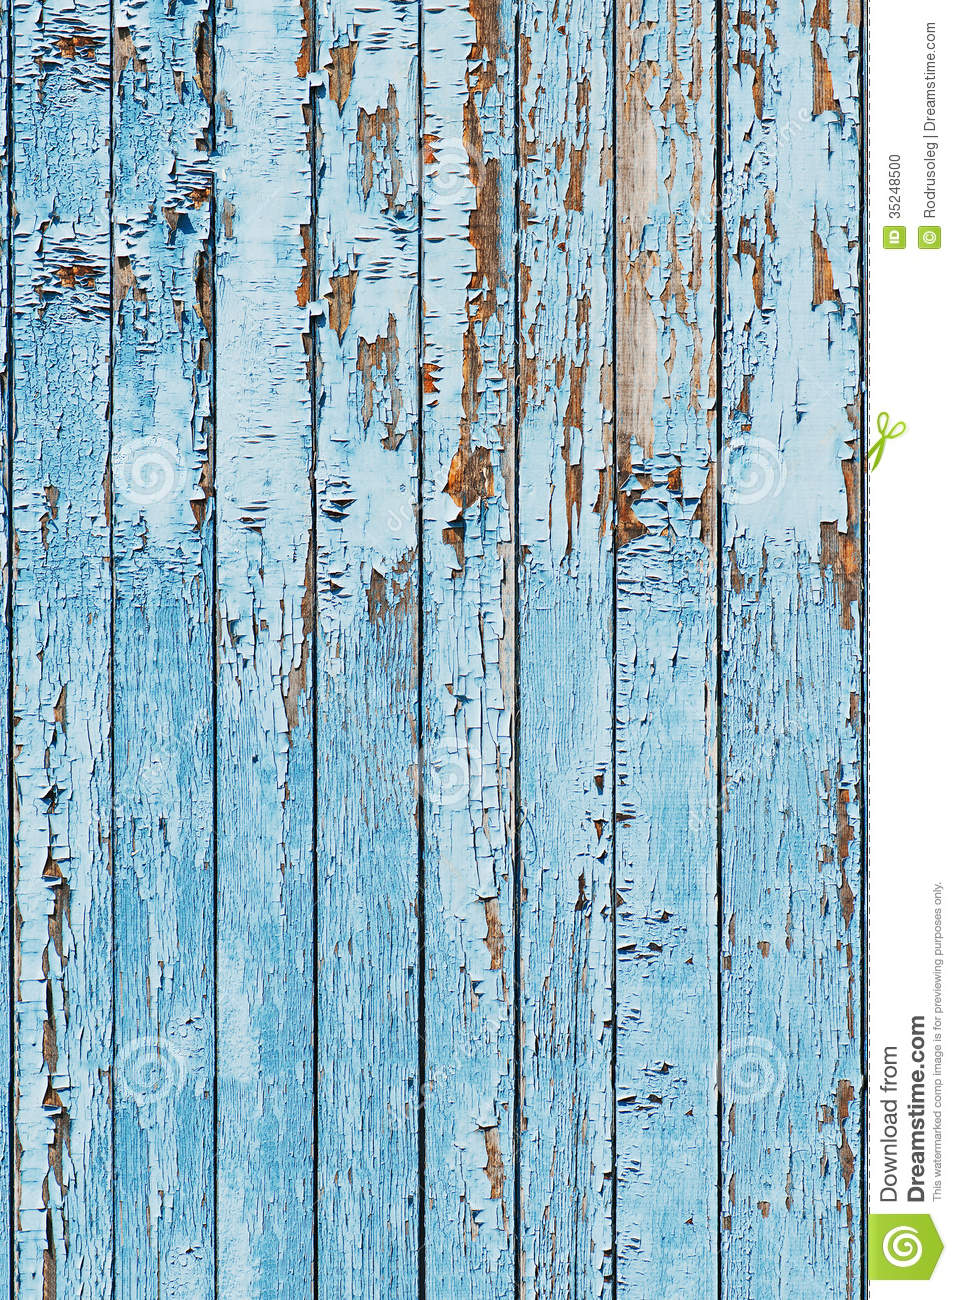 vieux fond en bois bleu de planche photo stock image du parquet brun 35248500. Black Bedroom Furniture Sets. Home Design Ideas